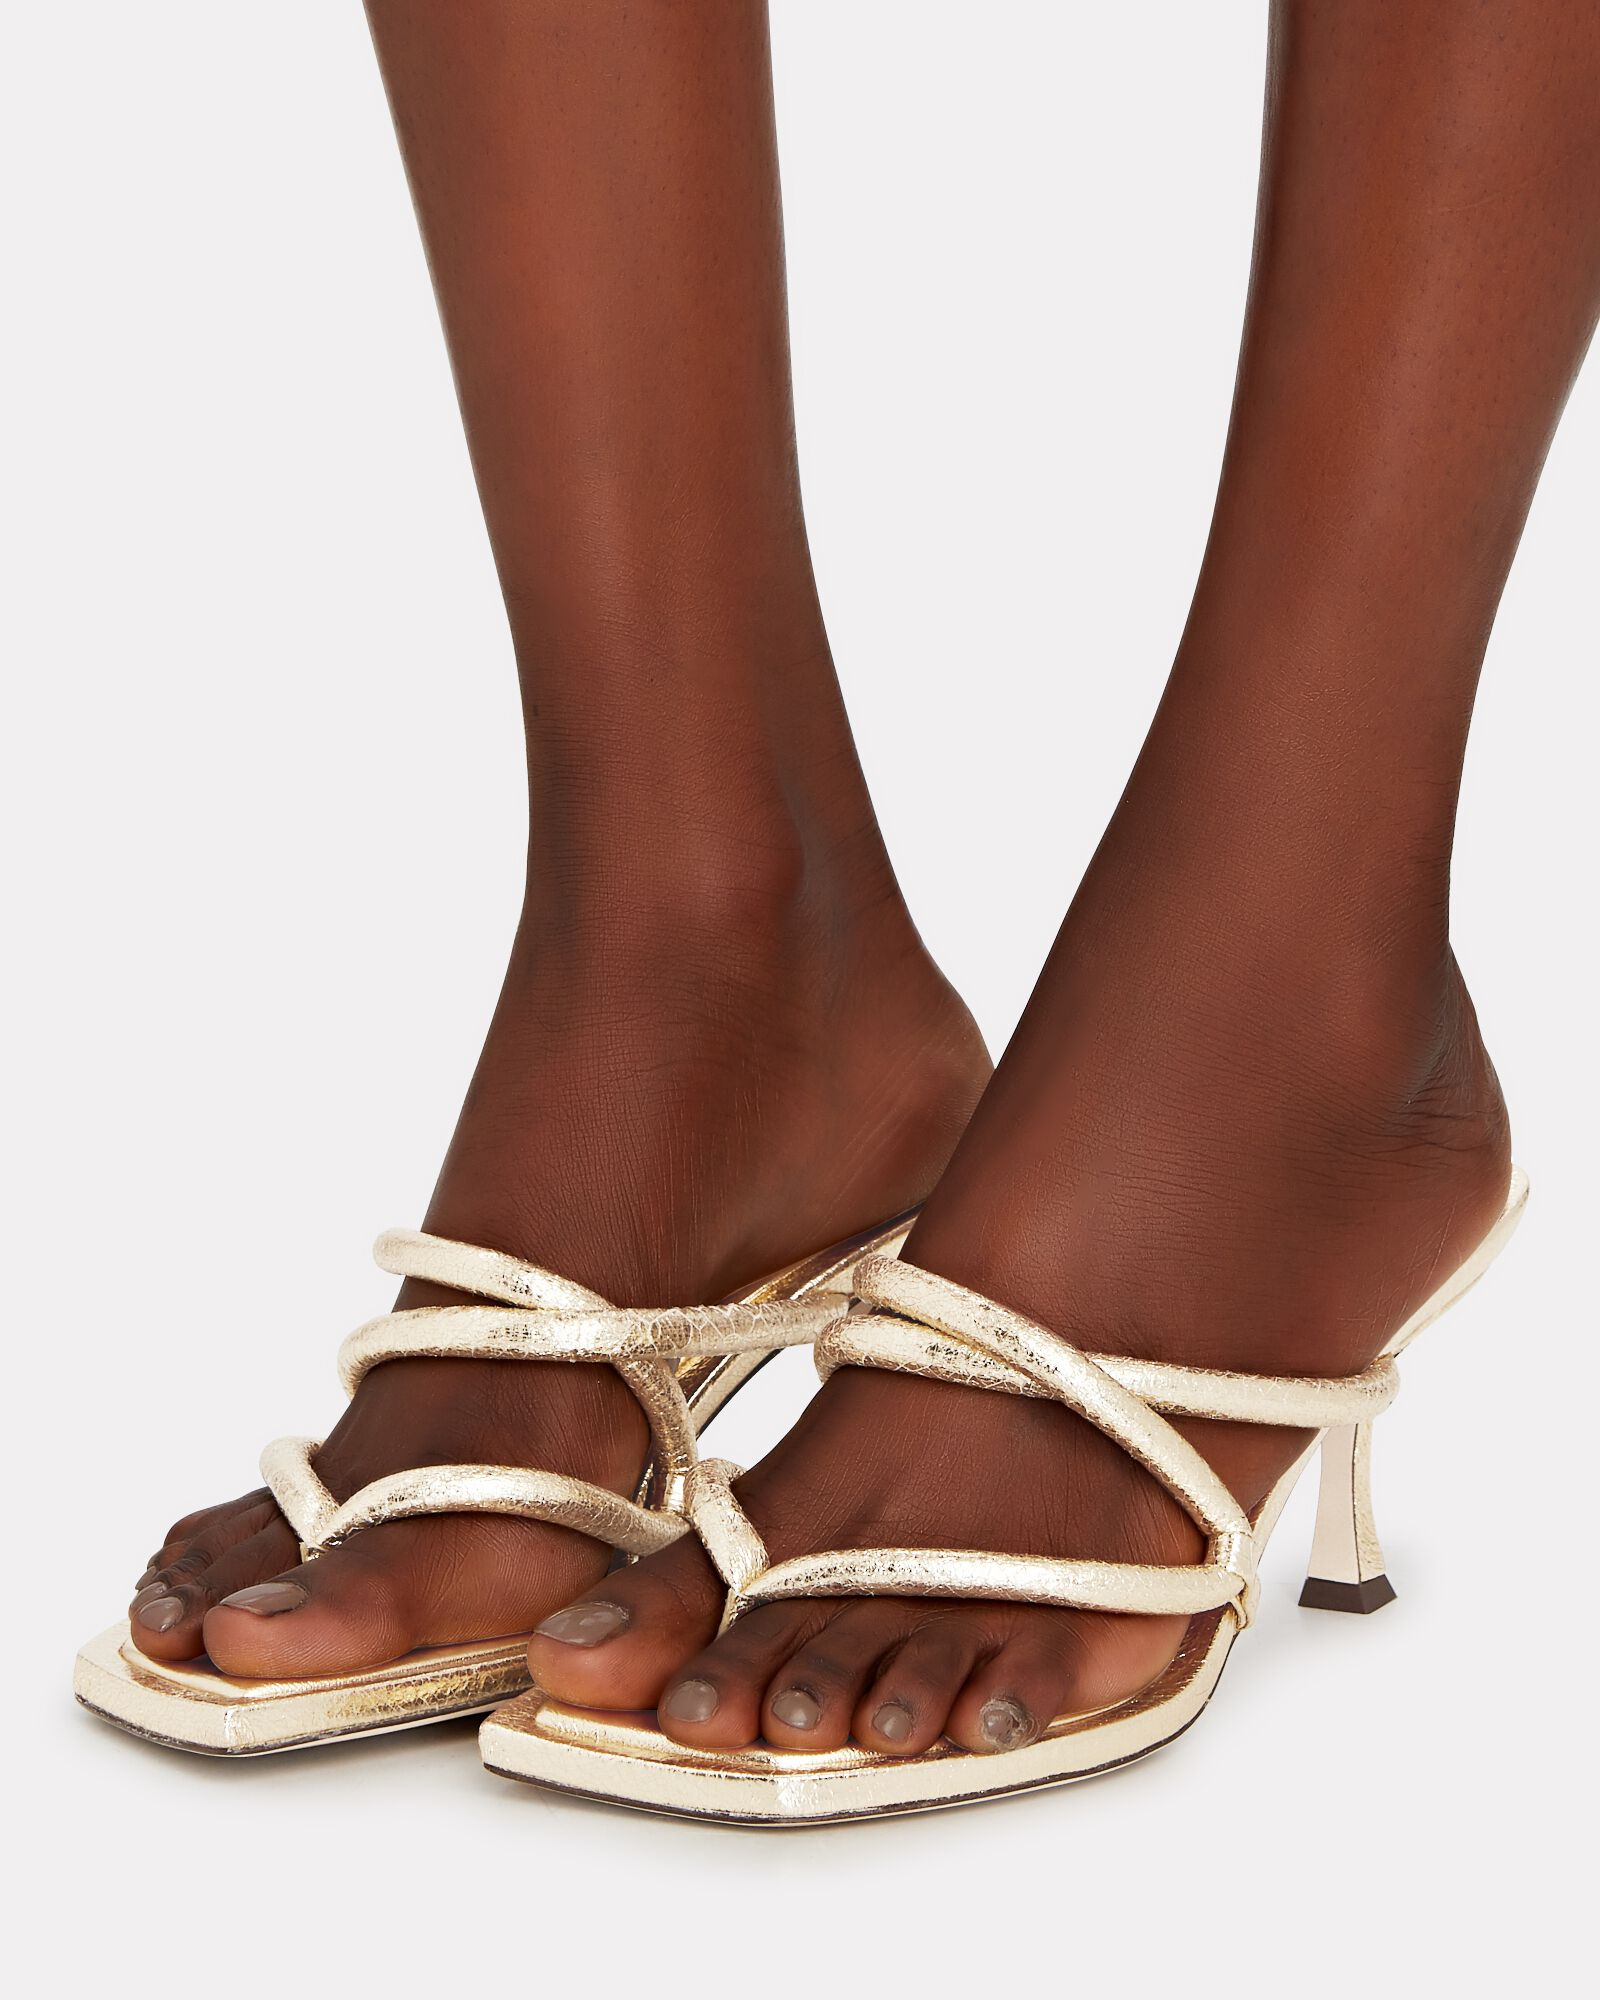 Cape 70 Puffy Leather Thong Sandals, GOLD, hi-res